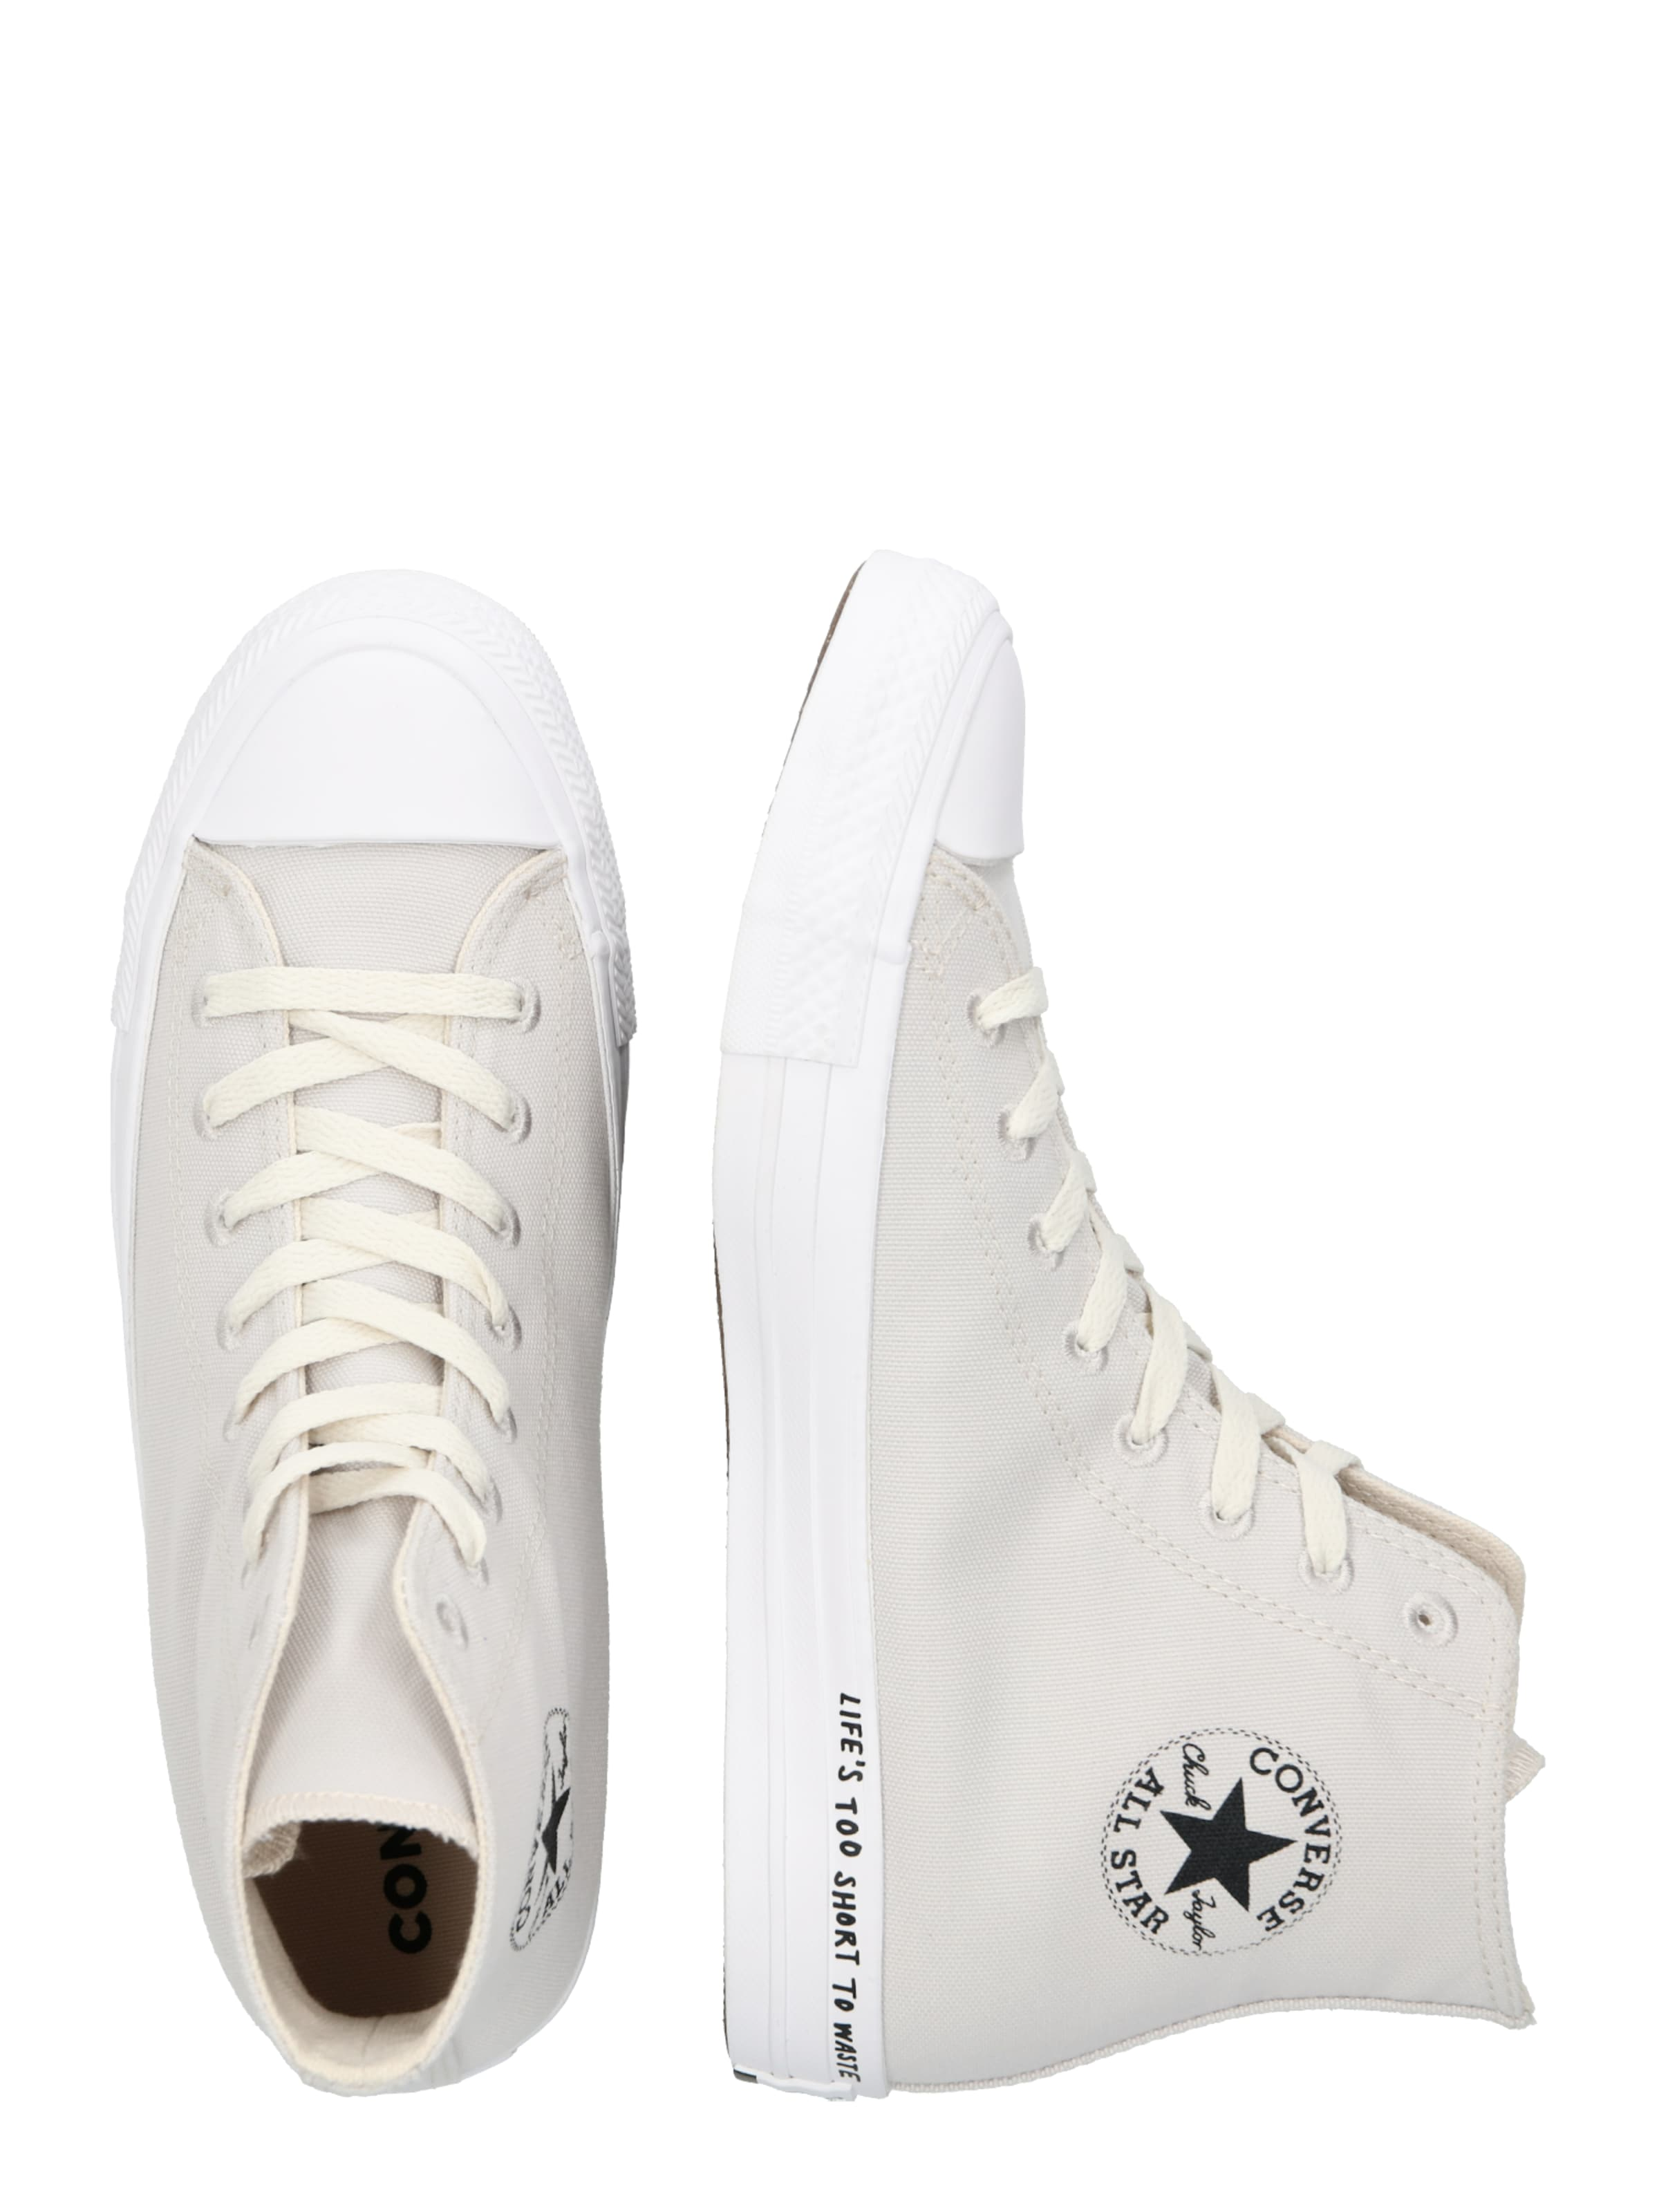 Creme Converse Sneaker RenewHi' In Taylor Star 'chuck All QrCedoEWxB